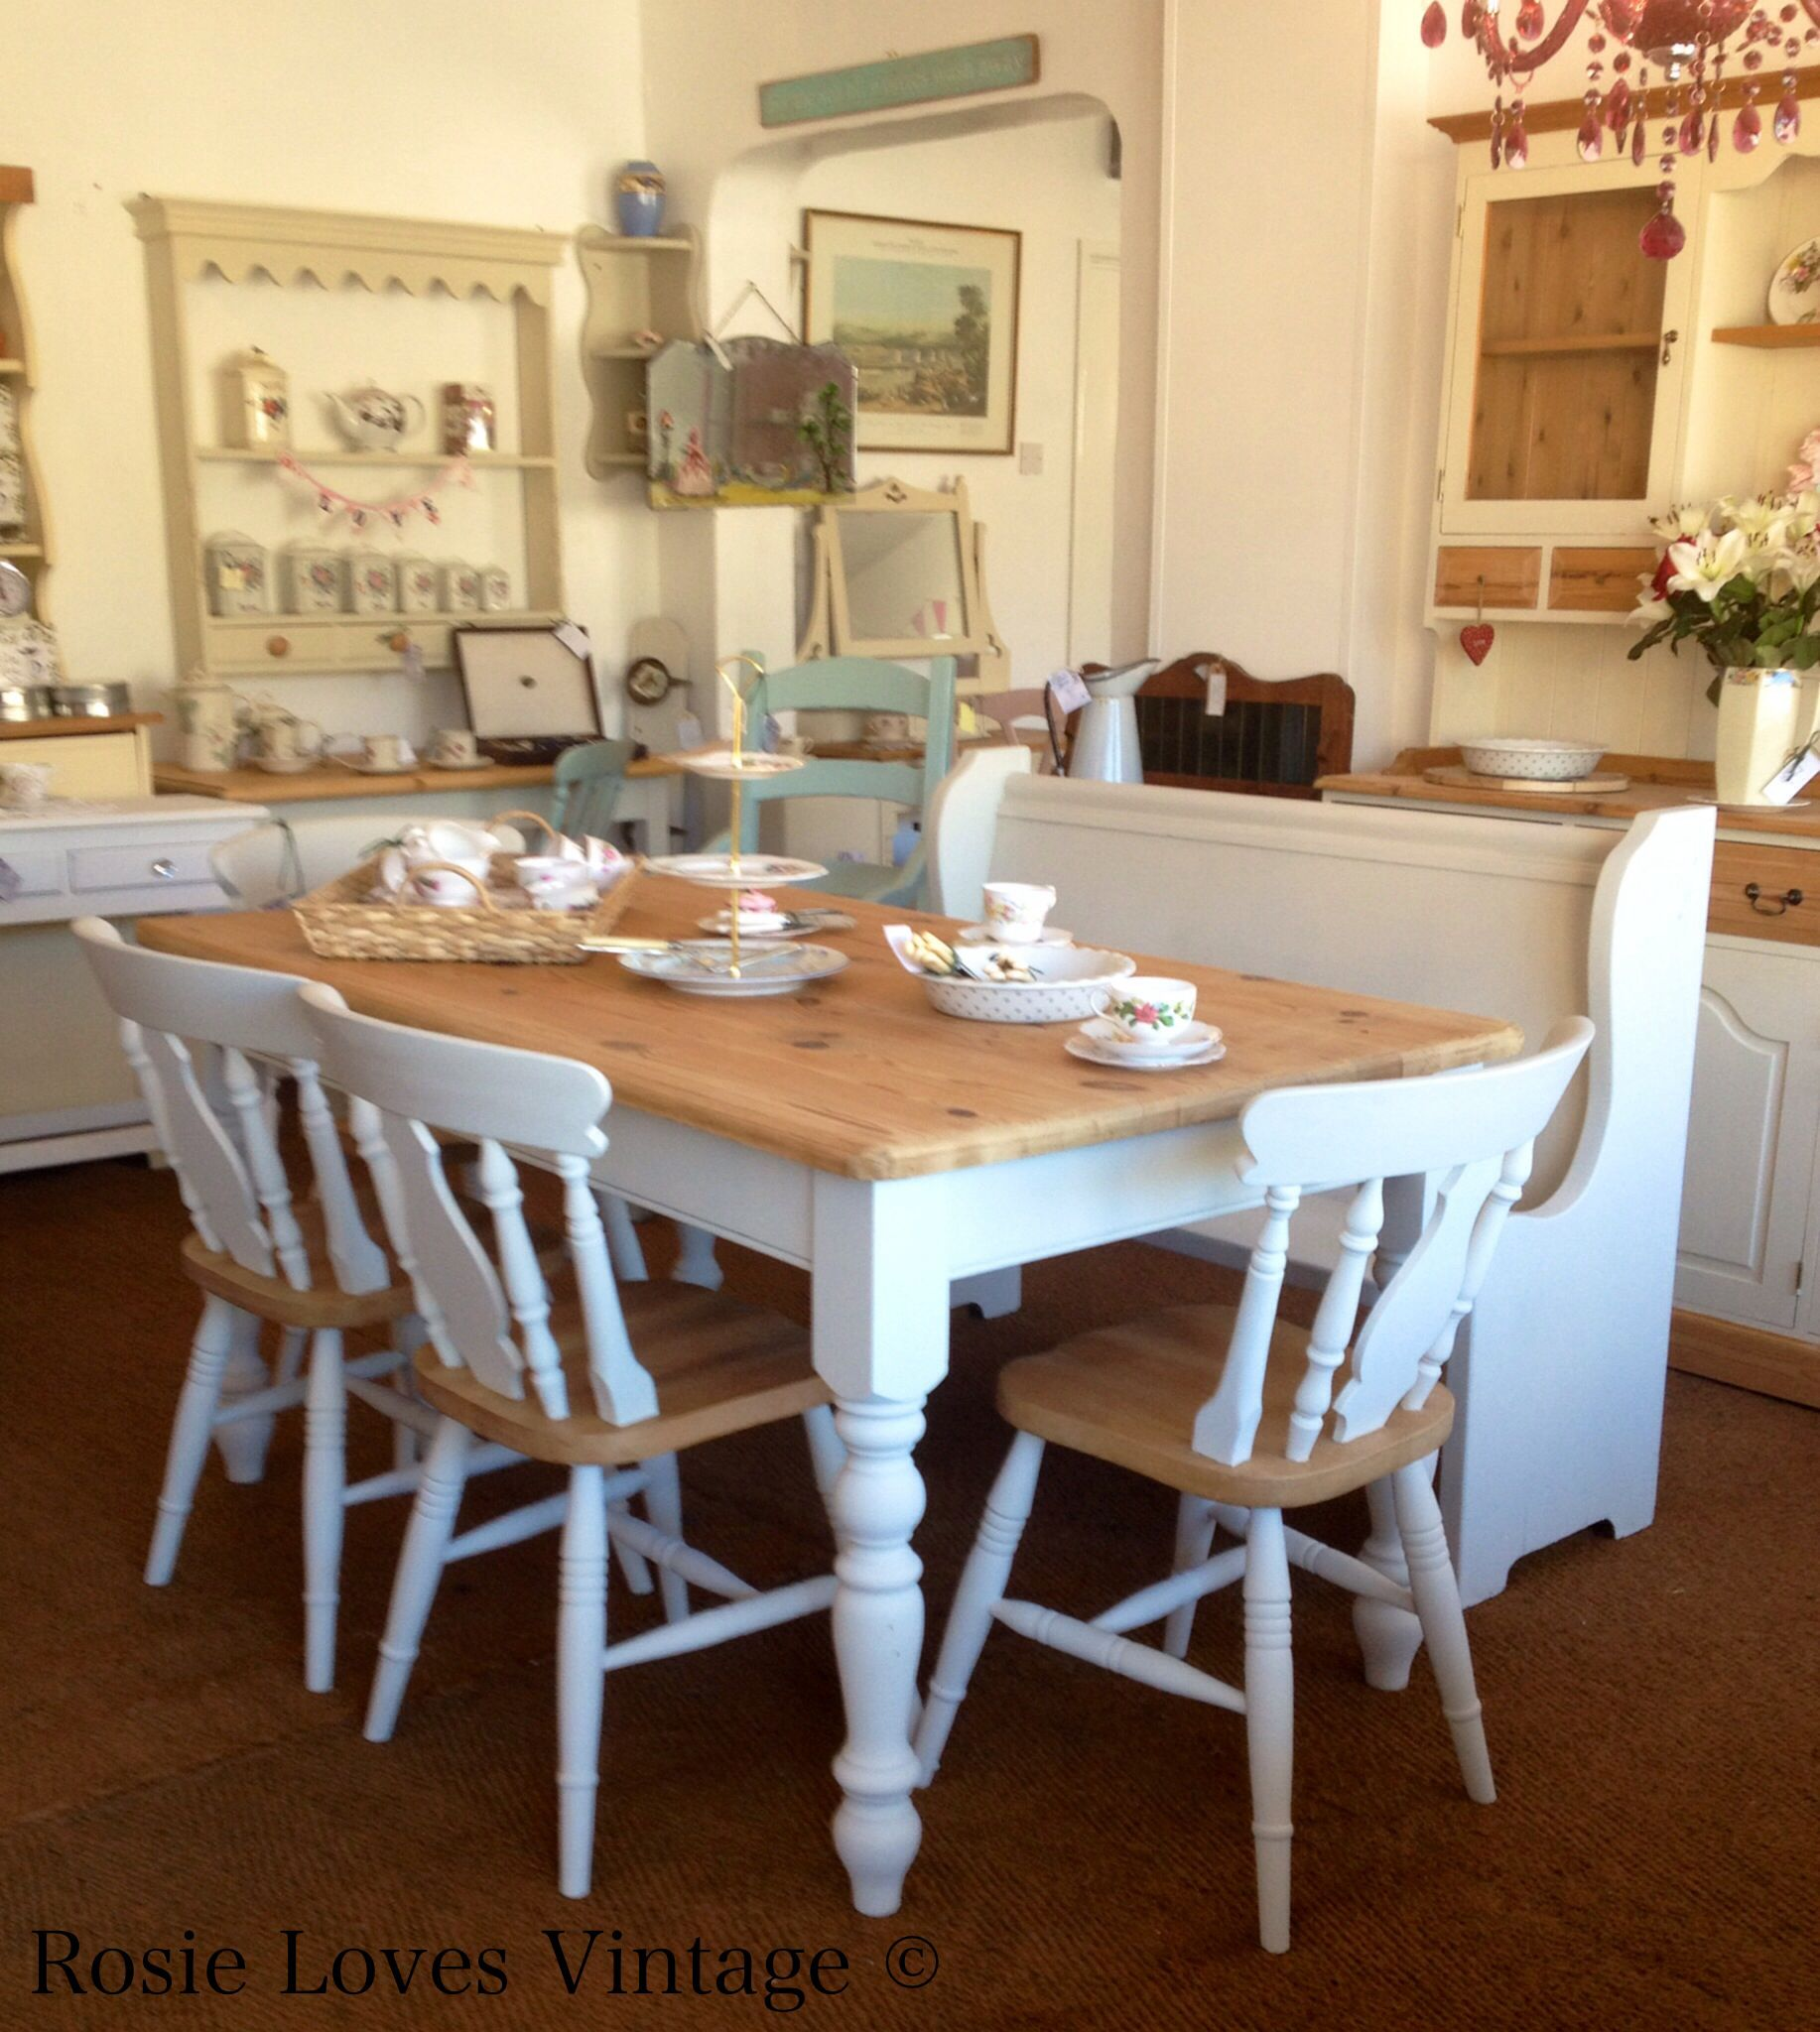 Rustic Painted Dining Table Four Farmhouse Chairs With Church Pew In Autentico Bath Stone